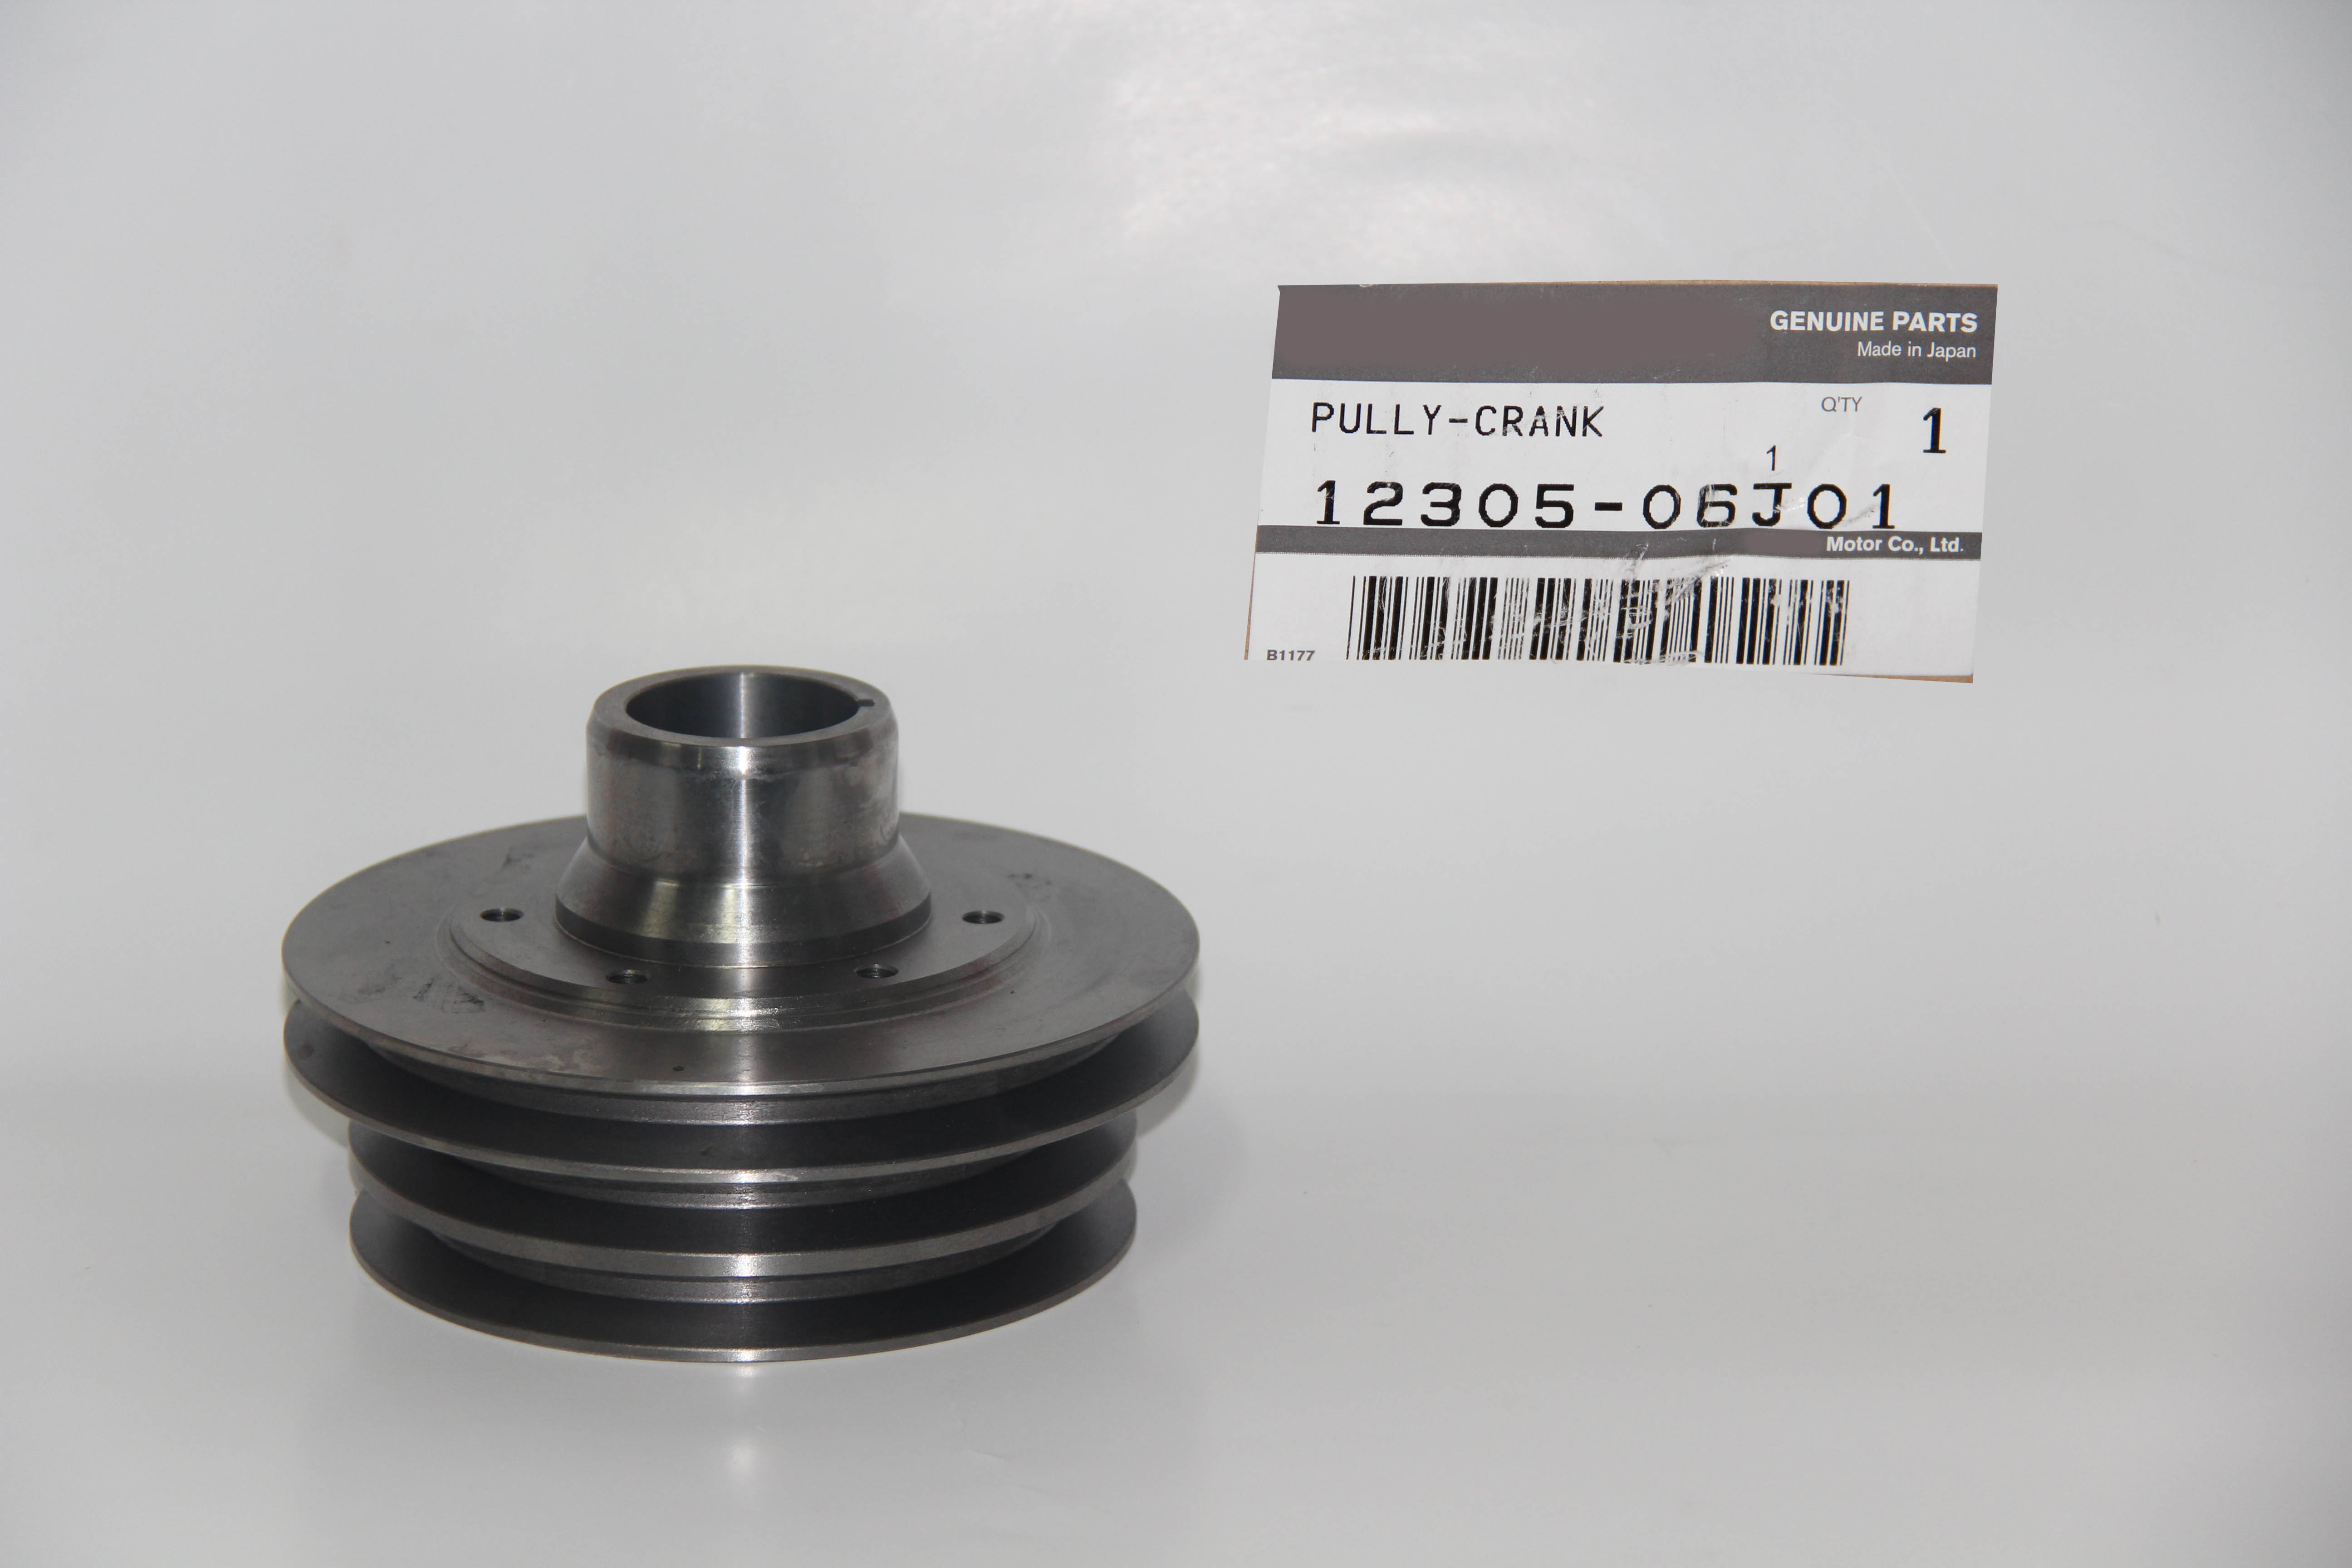 Oem Genuine Front Crankshaft Pulley To Fit Nissan Gq Gu Patrol Turbo Kits With Td42 Non Factory Engines